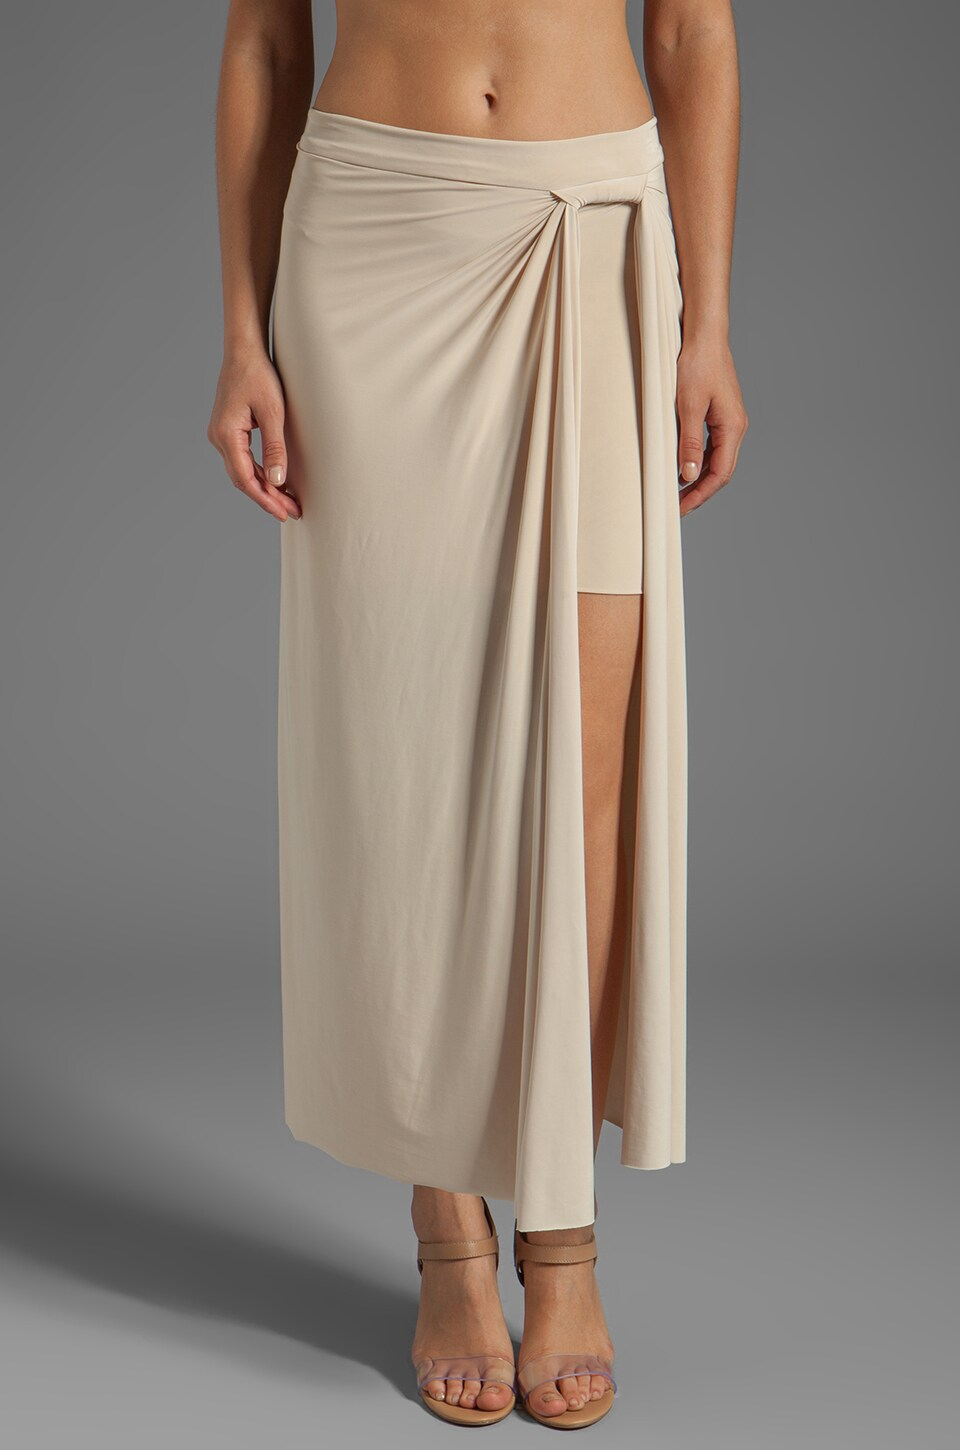 T-Bags LosAngeles Side Slit Maxi Skirt in Cream